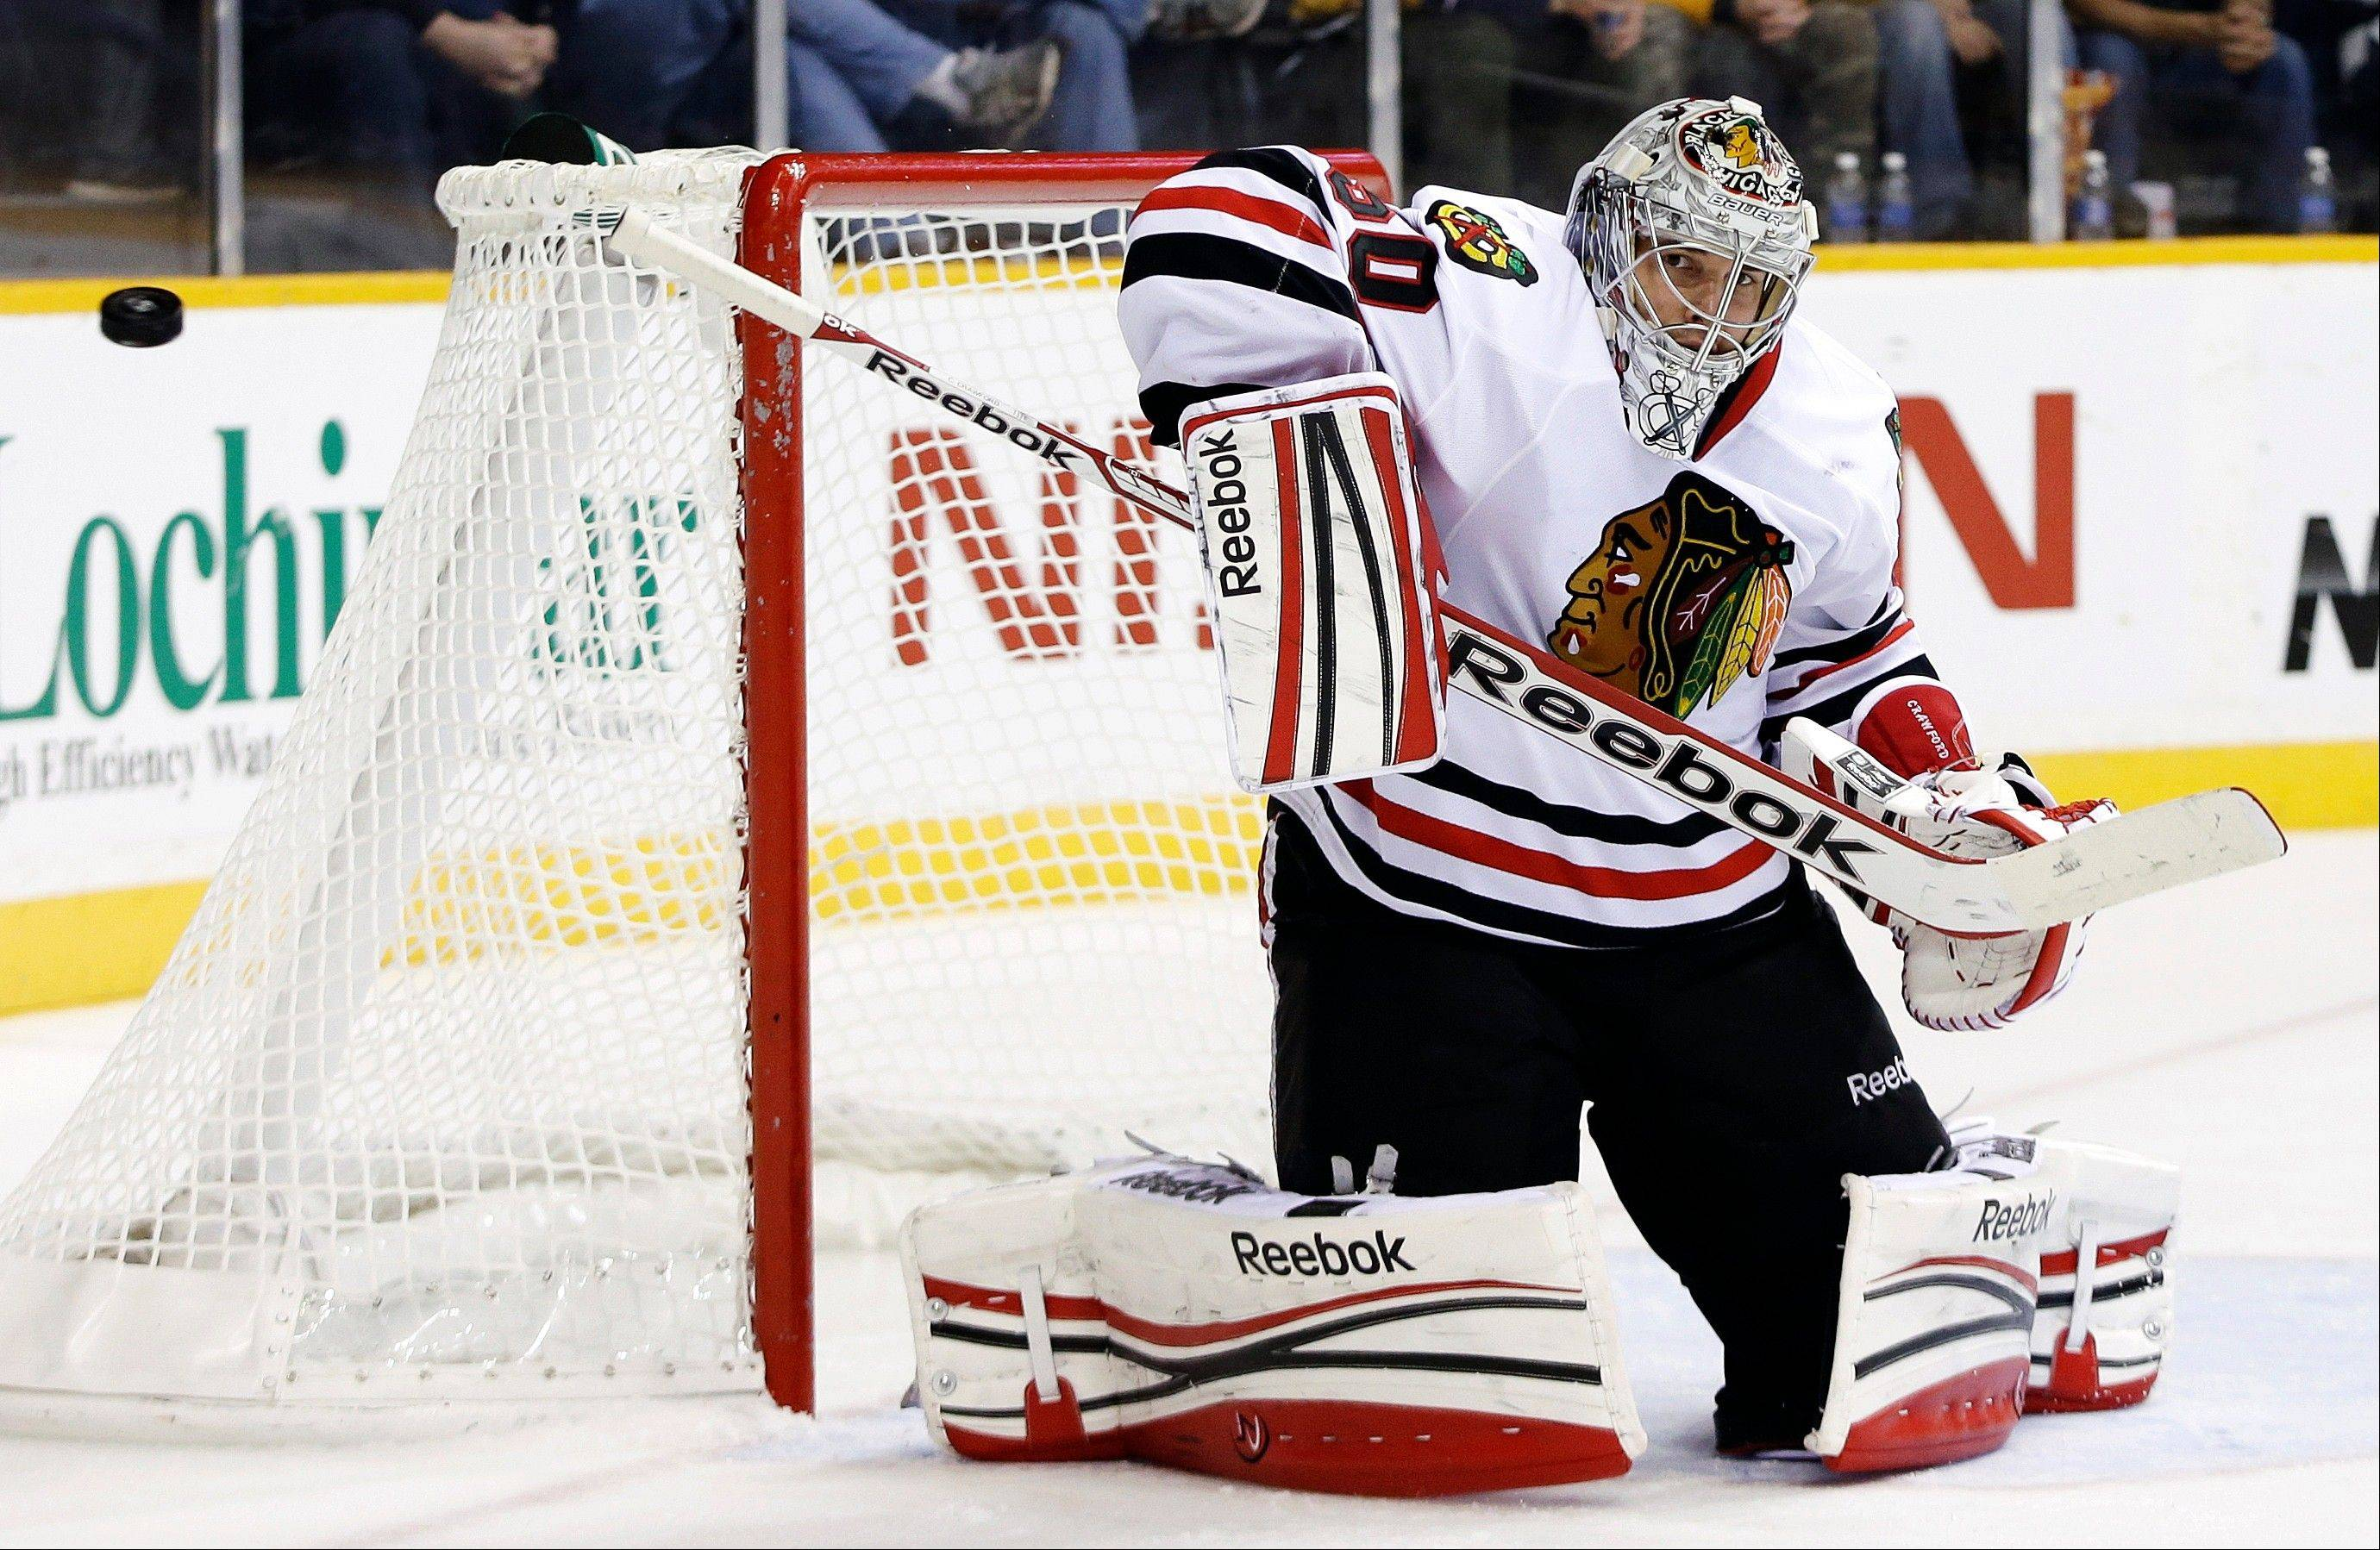 Blackhawks goalie Corey Crawford blocks a shot Sunday during his shutout against the Nashville Predators.